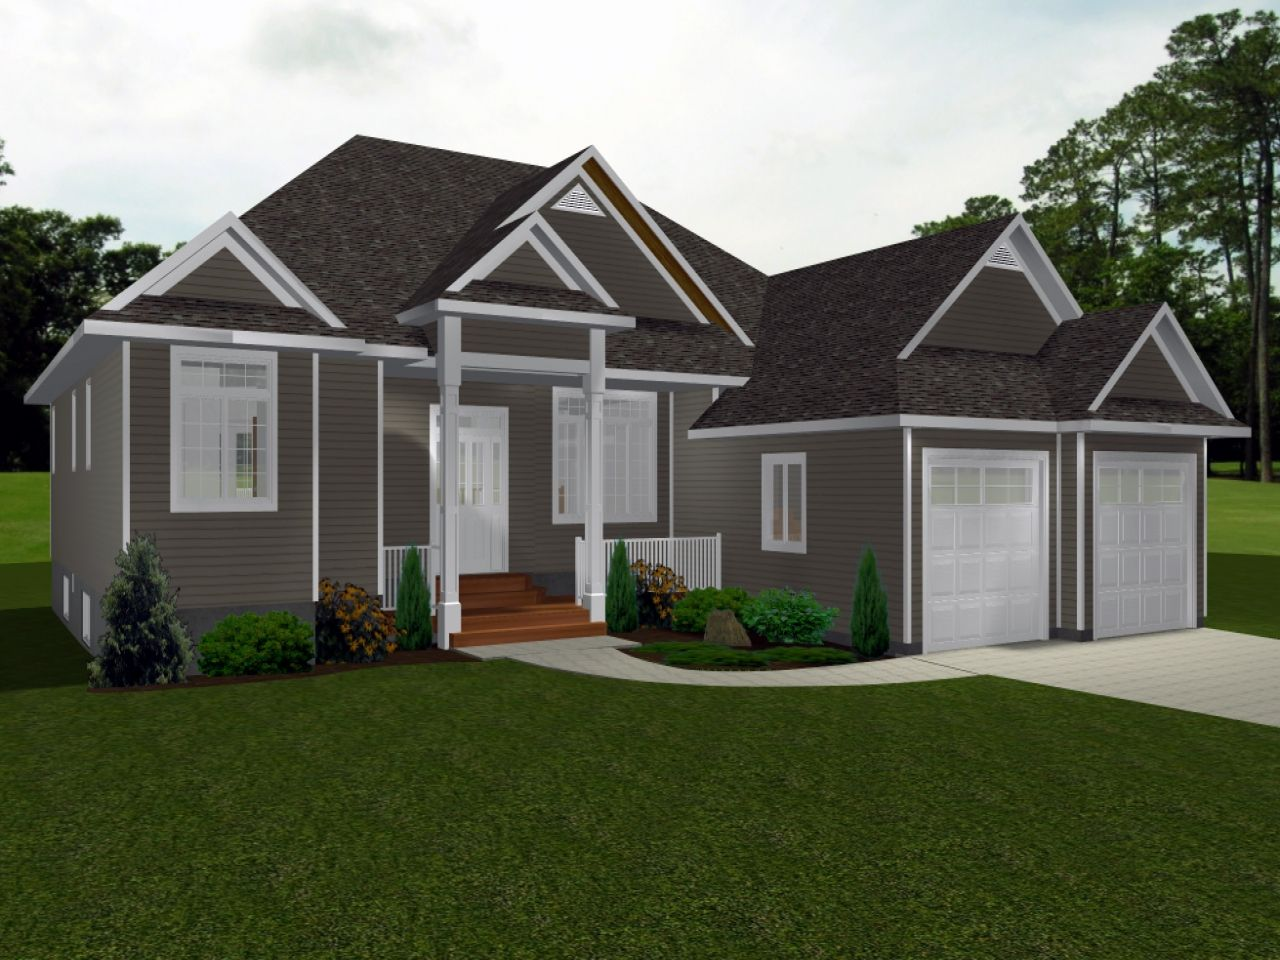 10 Bungalow House Plans To Impress Craftsman Style House Plans Bungalow House Plans Craftsman Bungalow House Plans